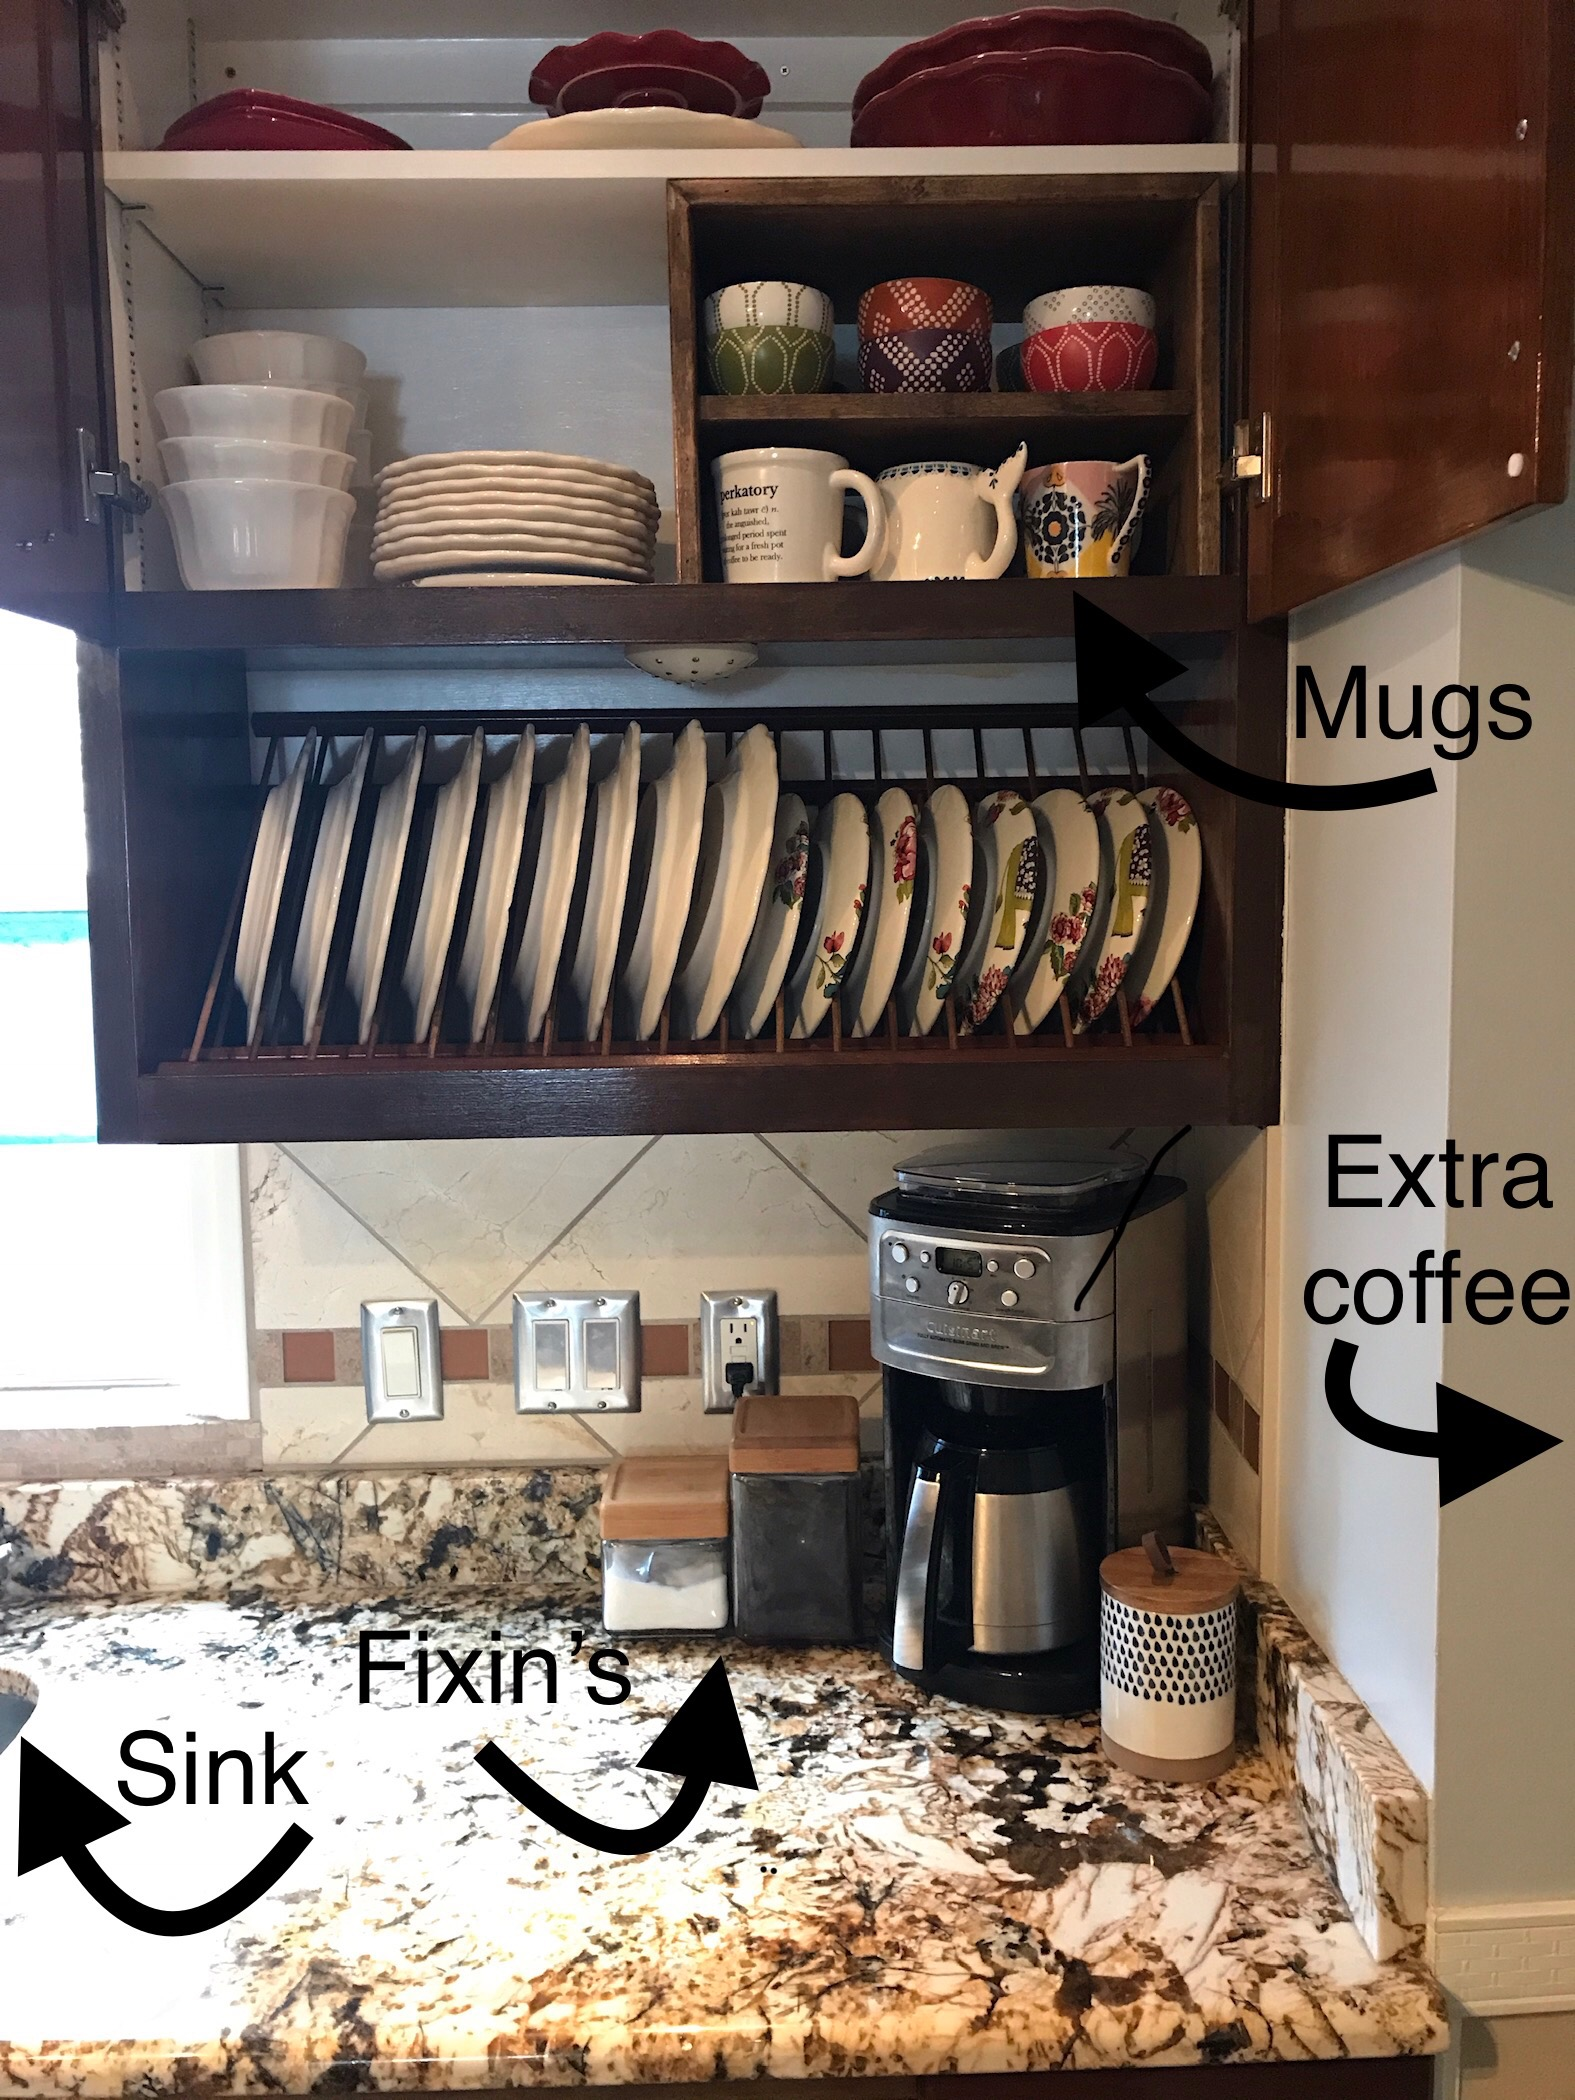 Having all of our coffee supplies in one place saves us time every morning and makes our small kitchen feel less crowded when we have company over.